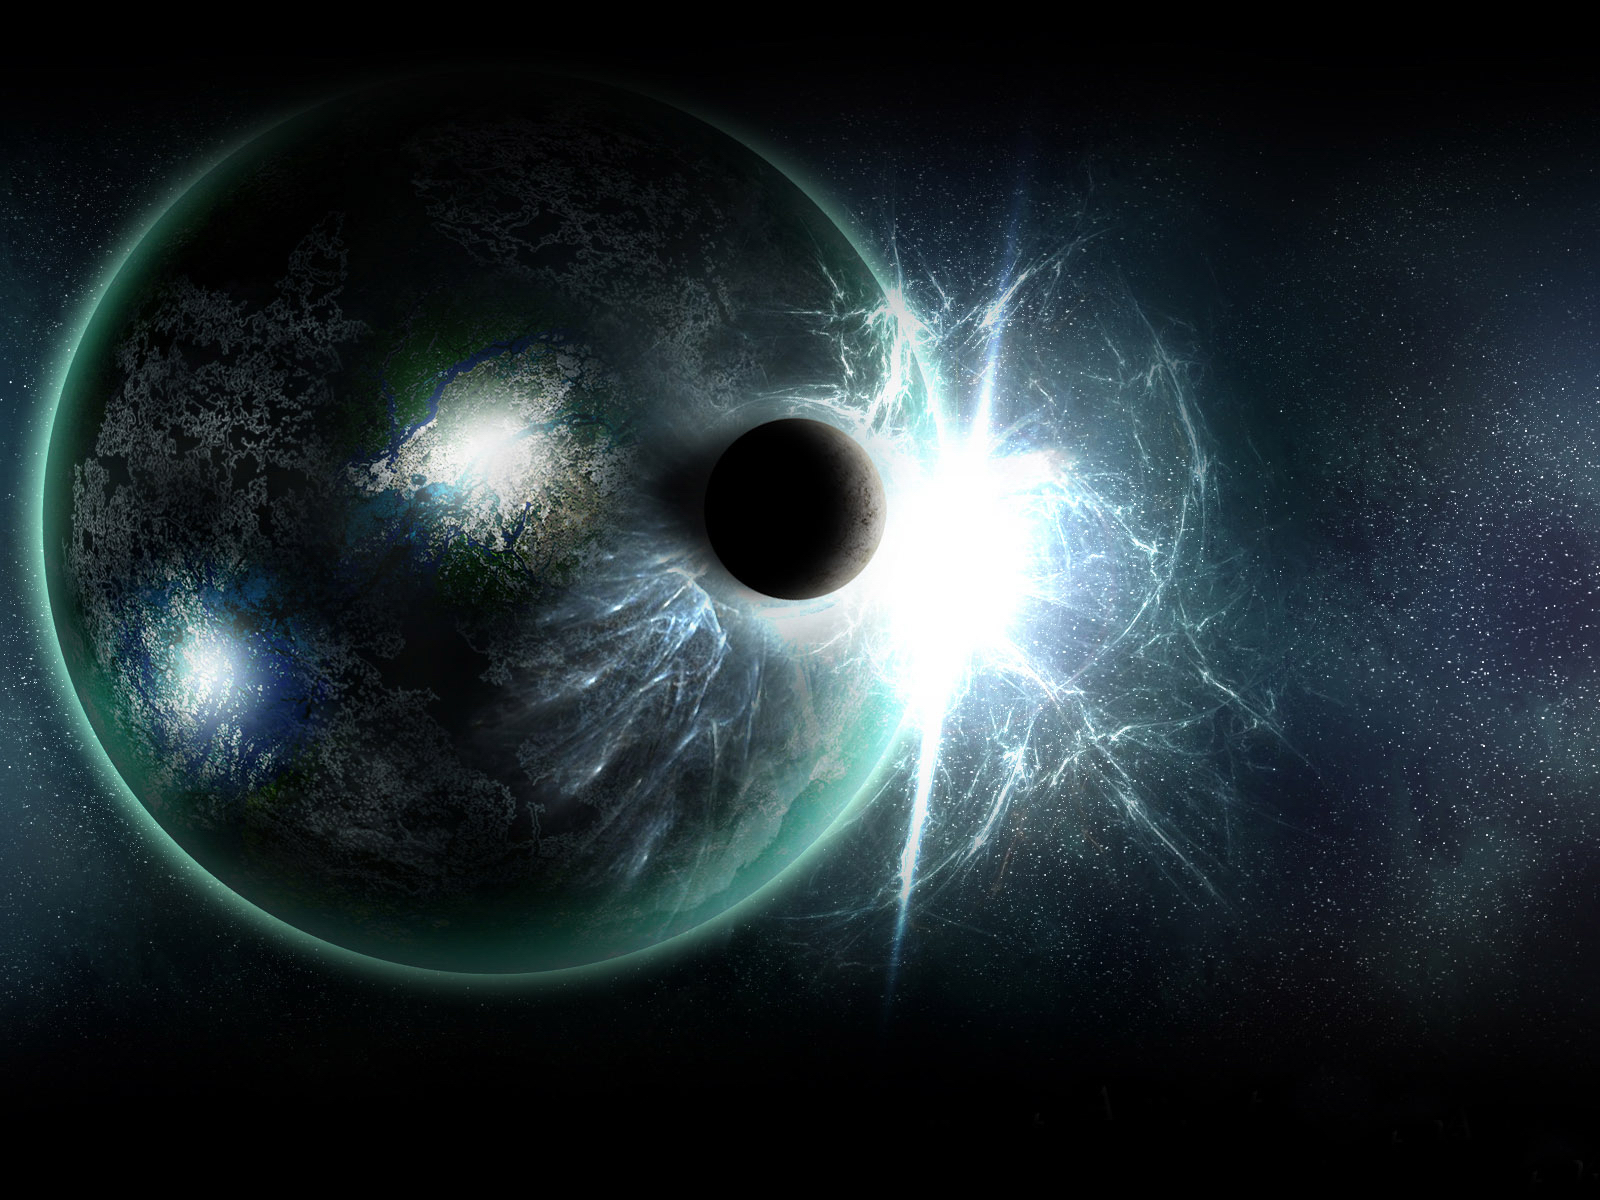 Free Download Space Wallpapers Hd 1080p Space Wallpapers Hd